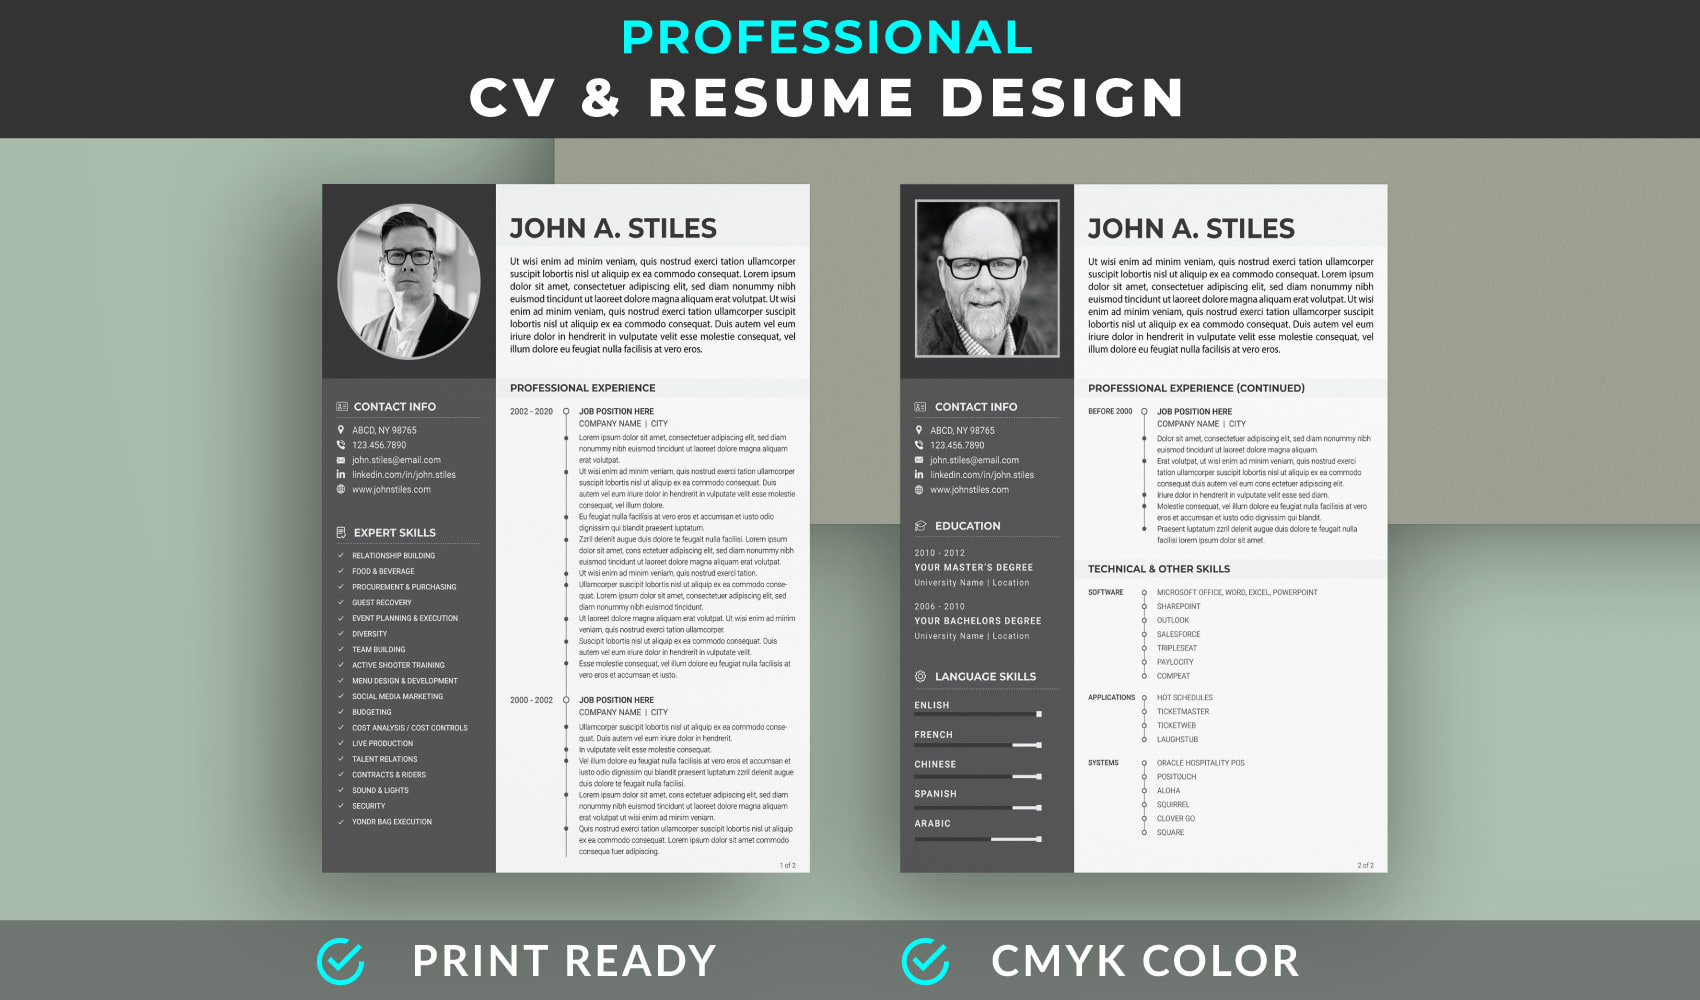 Resume And Cover Letter Template from fiverr-res.cloudinary.com